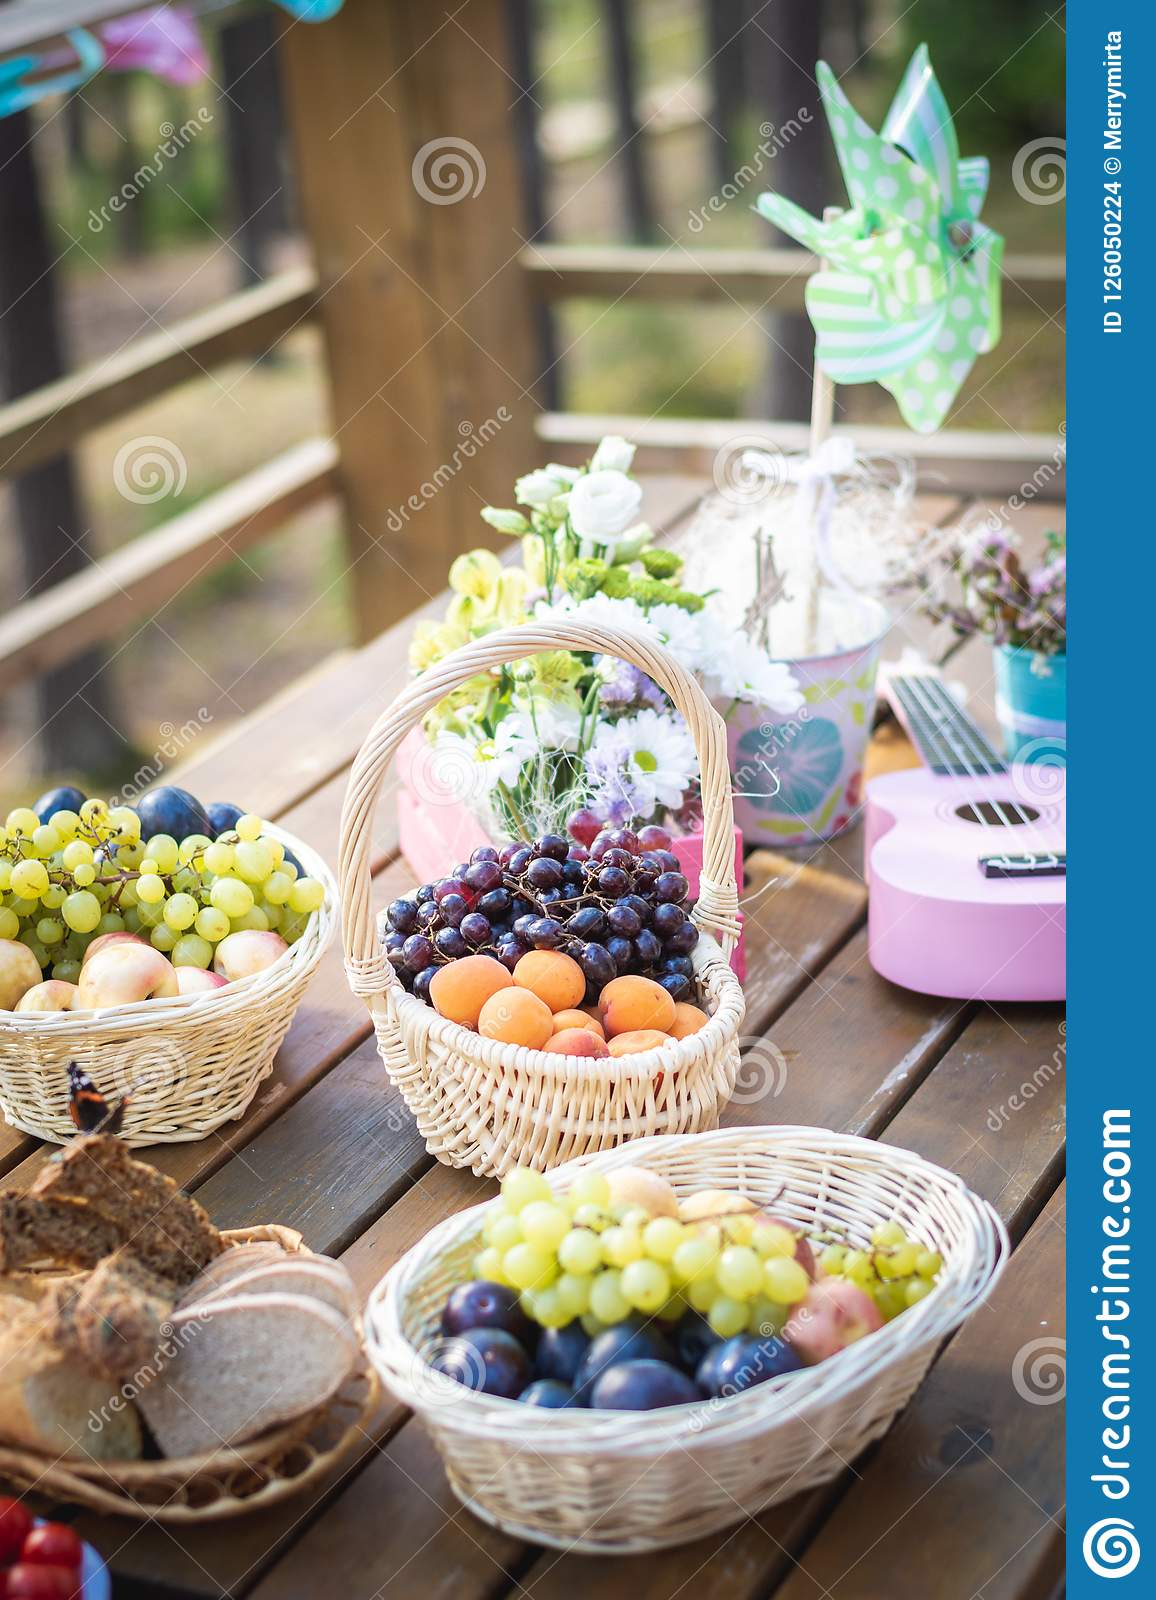 Picnic Party Table Decoration Baskets With Fruits On A Wooden Table Flowers Pink Small Guitar And Pinwheel Stock Photo Image Of Food Celebration 126050224